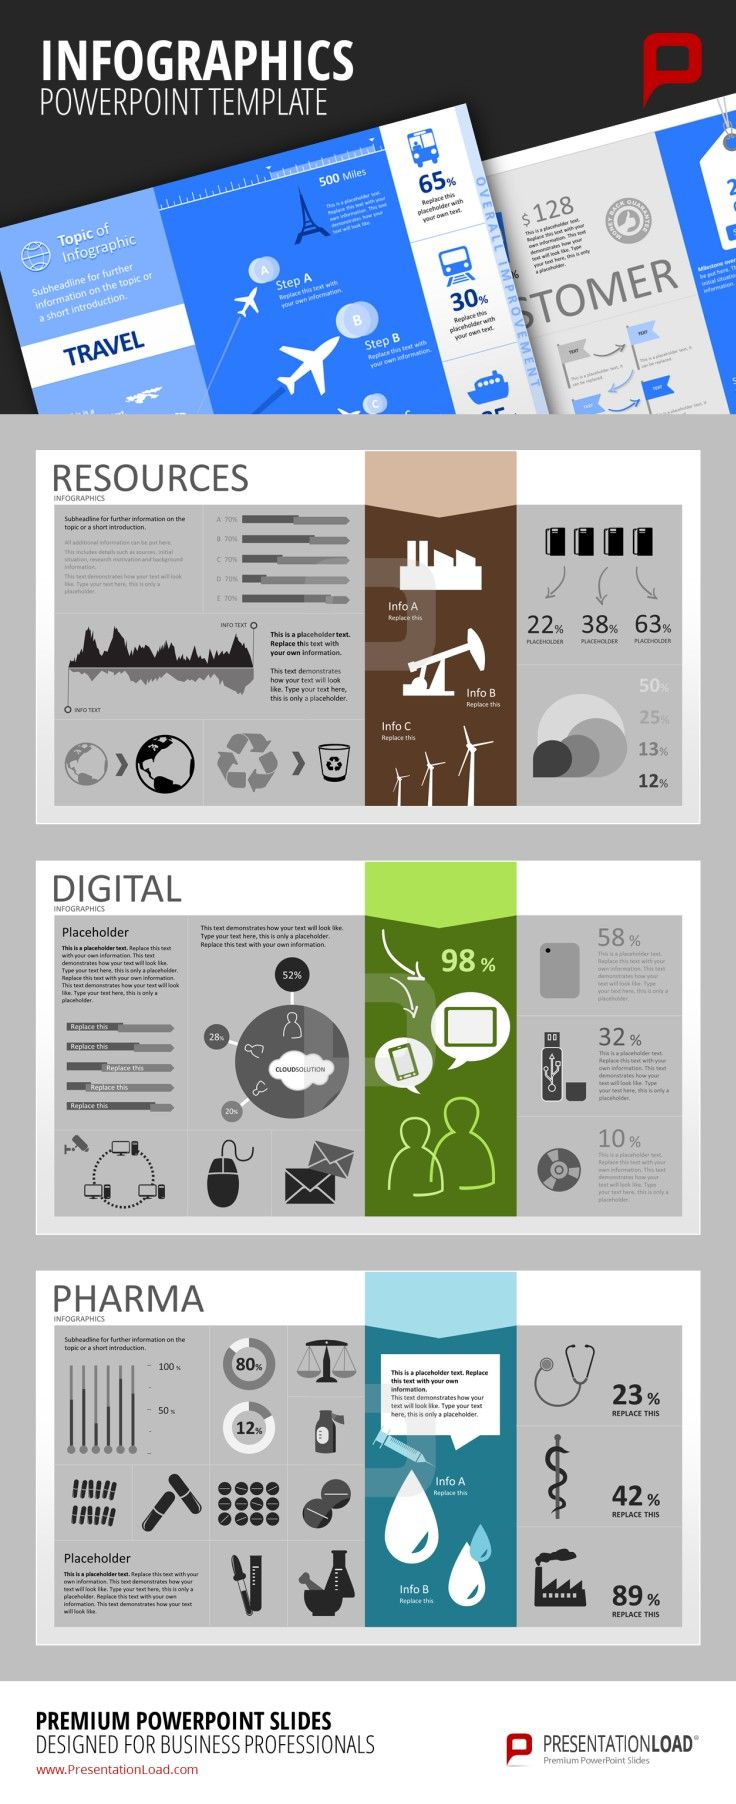 Infographic PowerPoint Templates Use our templates to